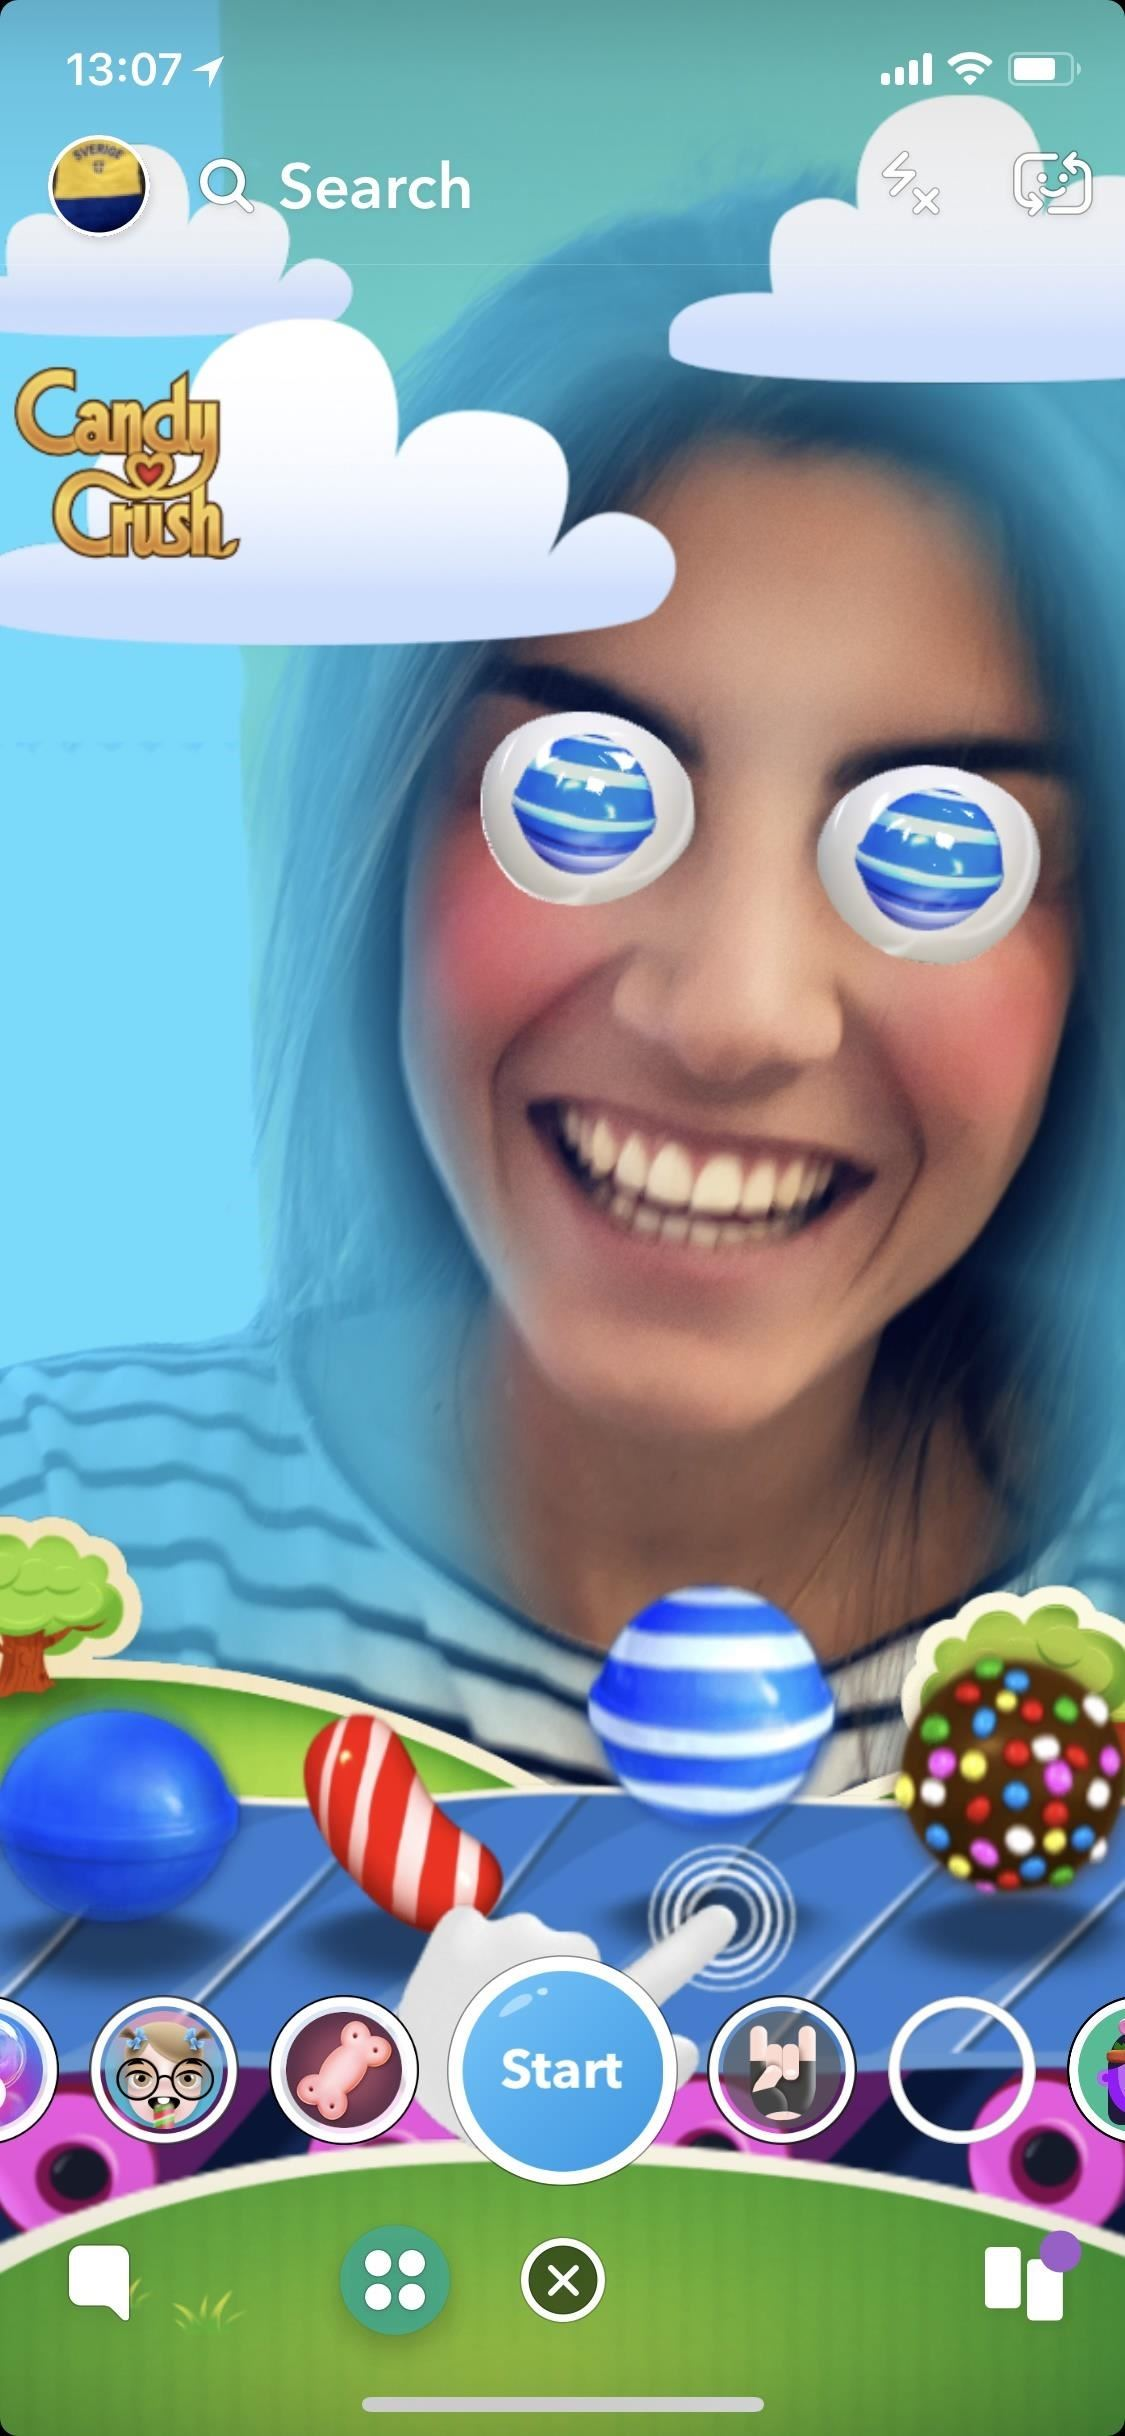 Snapchat unlocks snappable augmented reality games for brands such as Candy Crush, Bud Light and Dunkin & # 39; Donuts